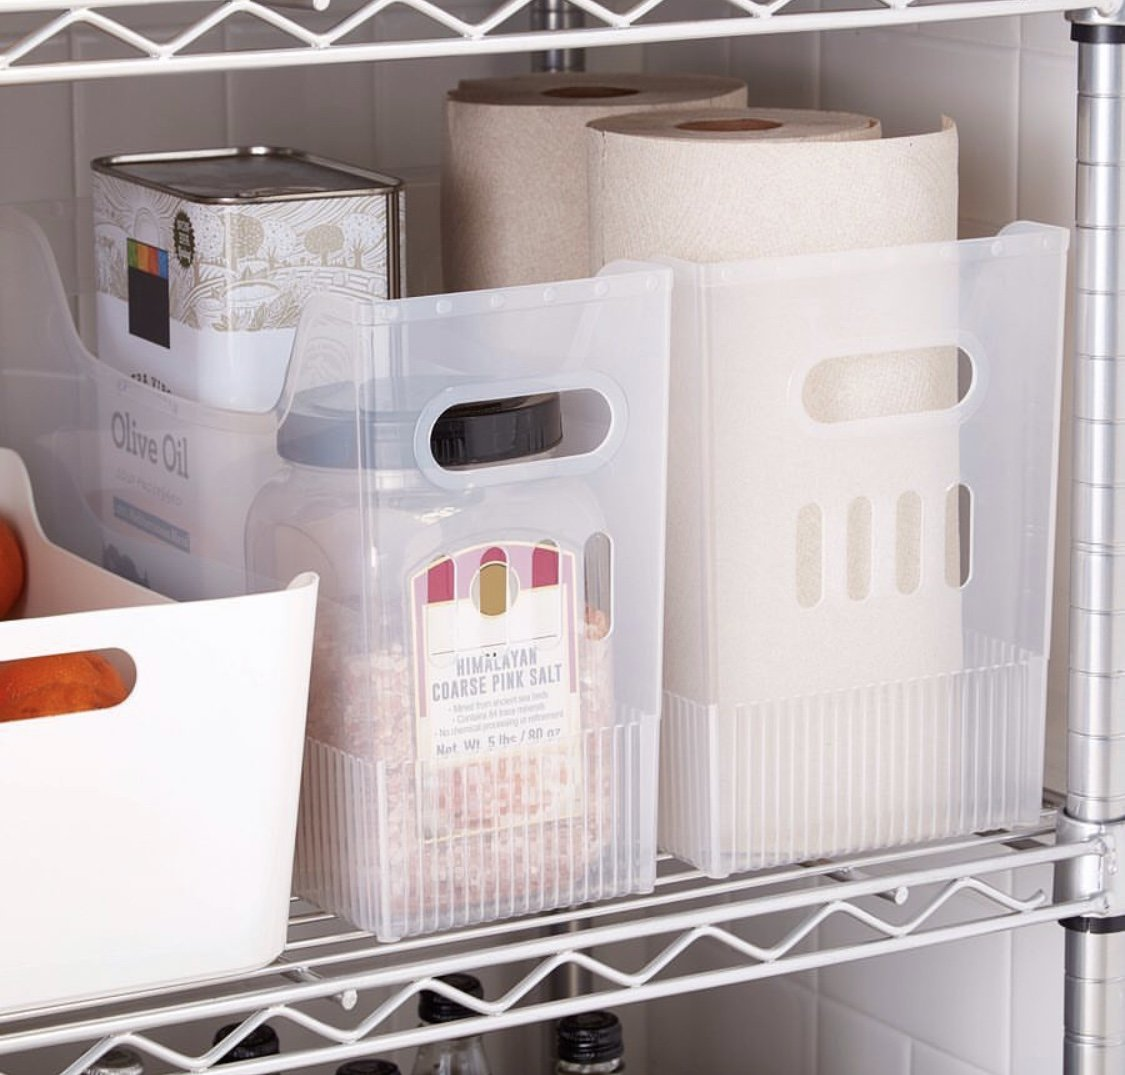 Stacey Crew Wellness Kitchen Organization Container Store Containers